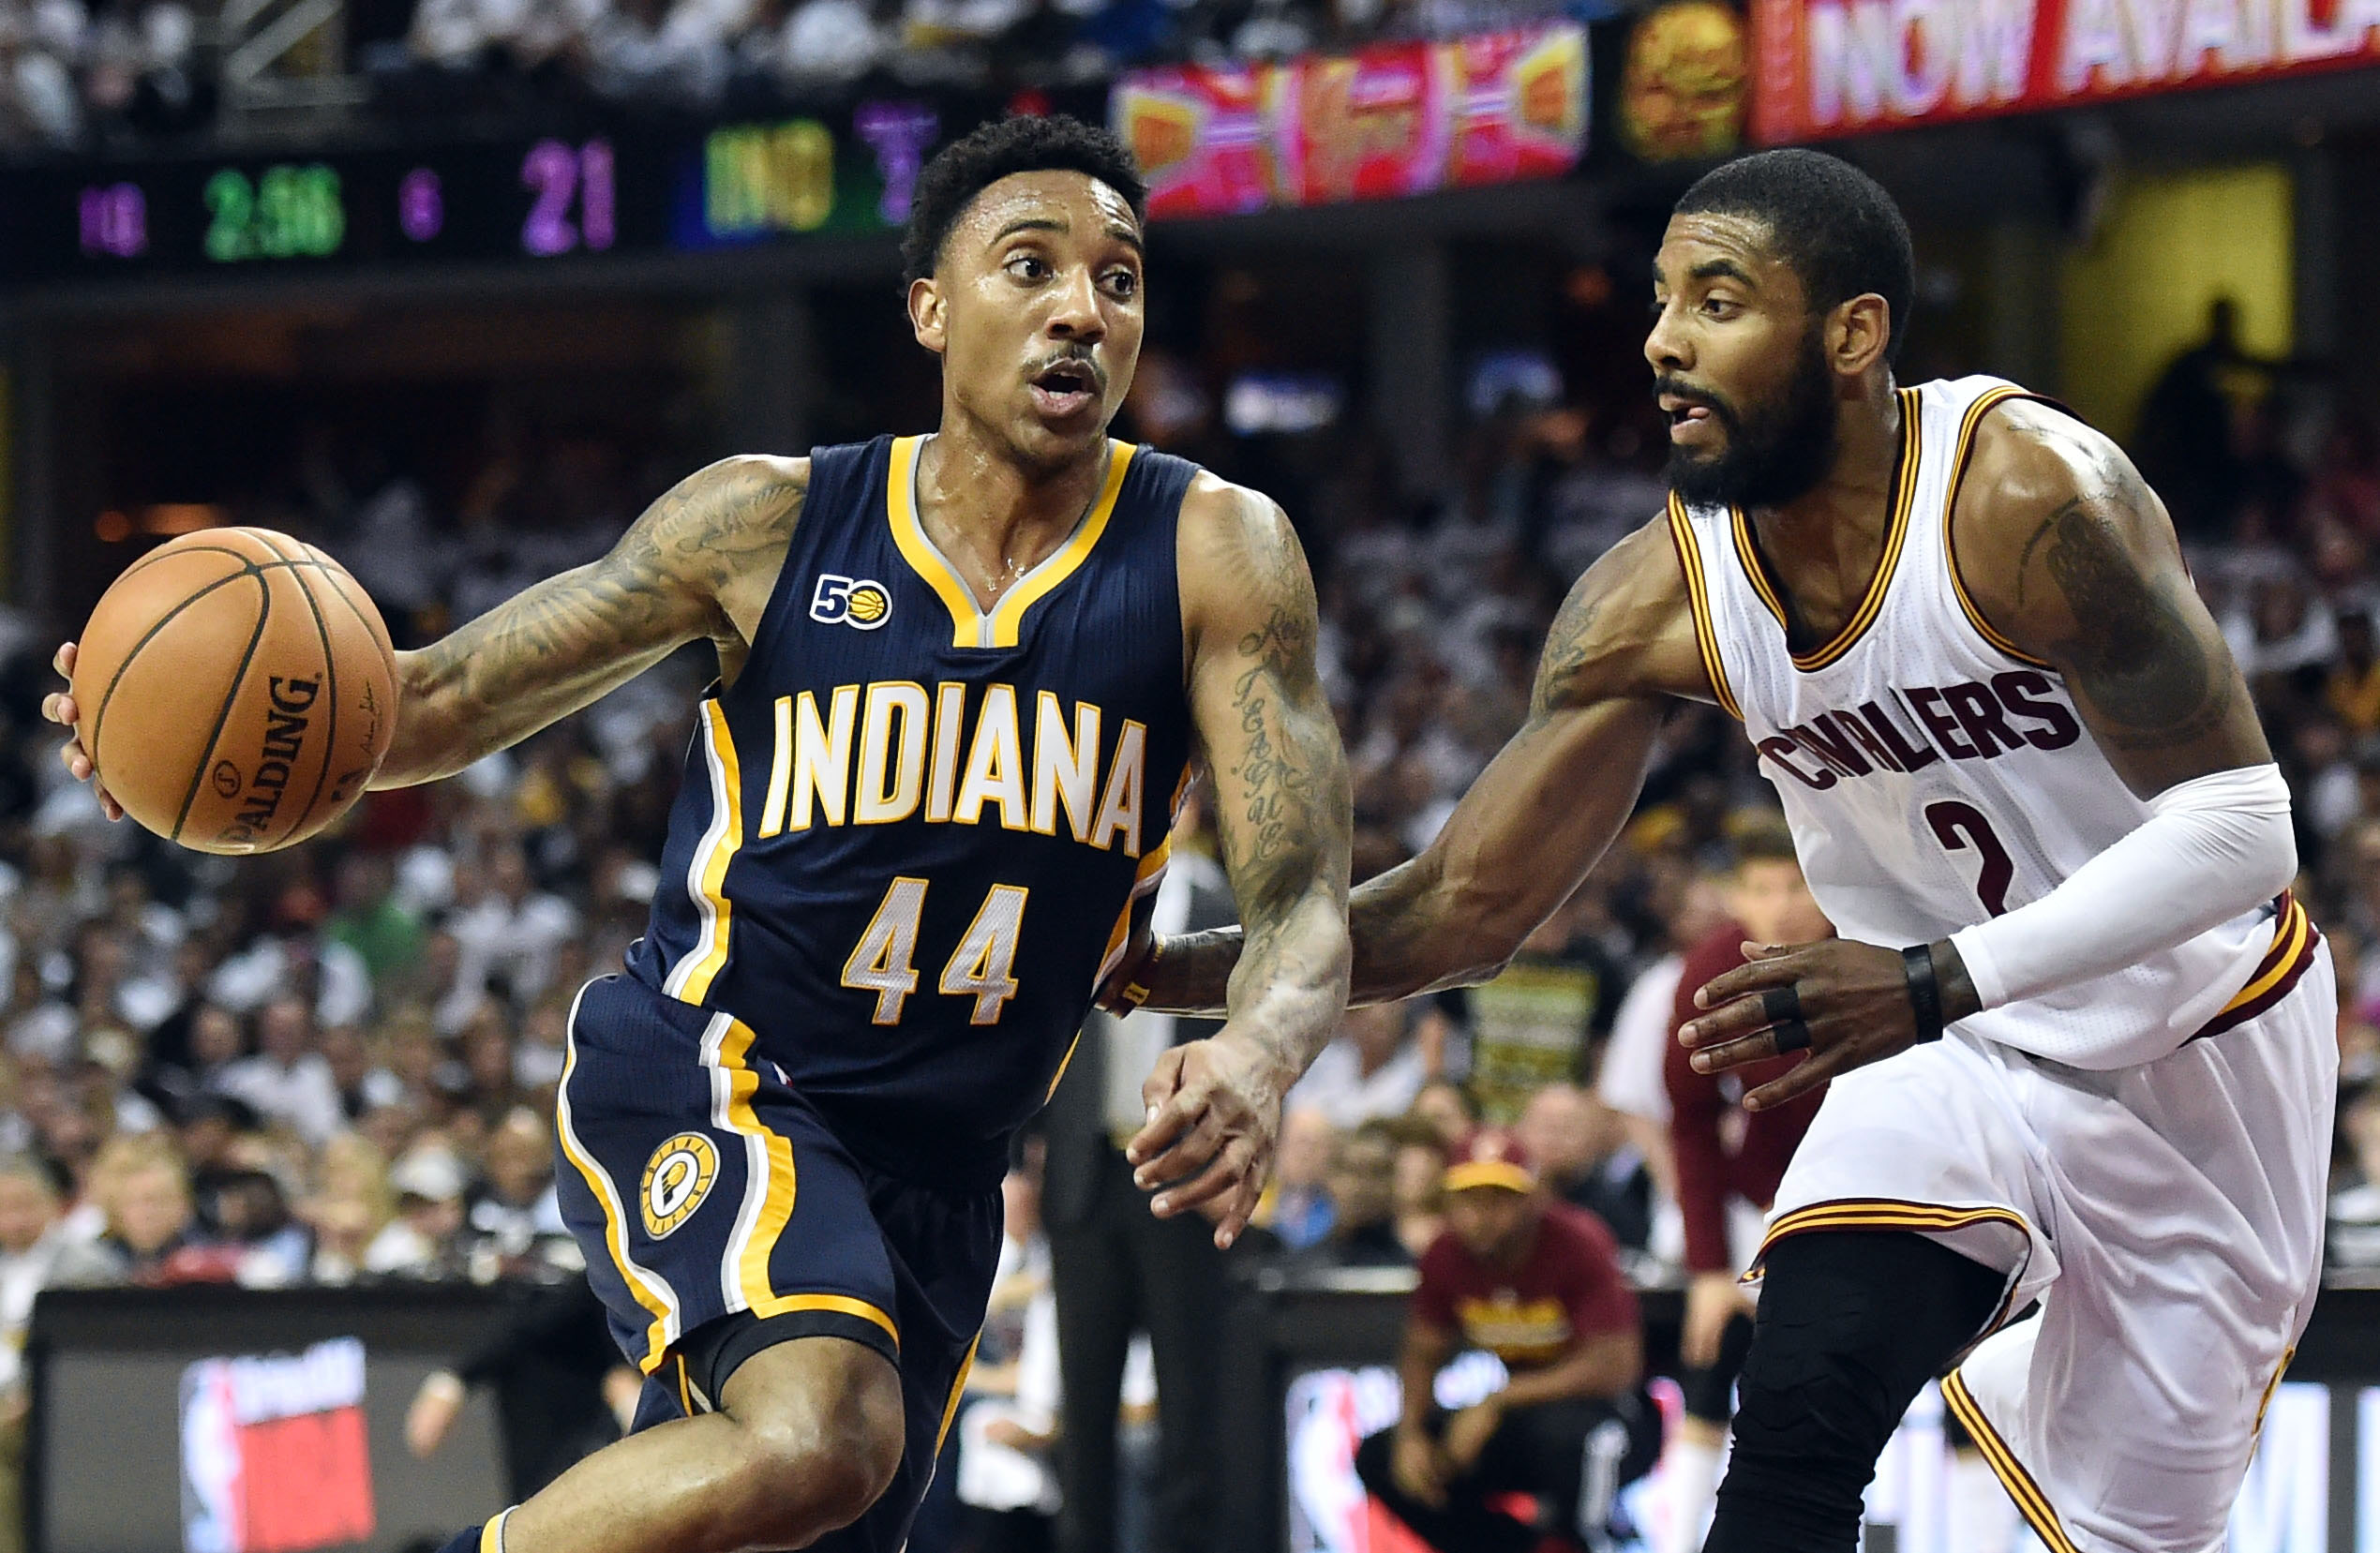 10017499-nba-playoffs-indiana-pacers-at-cleveland-cavaliers-1